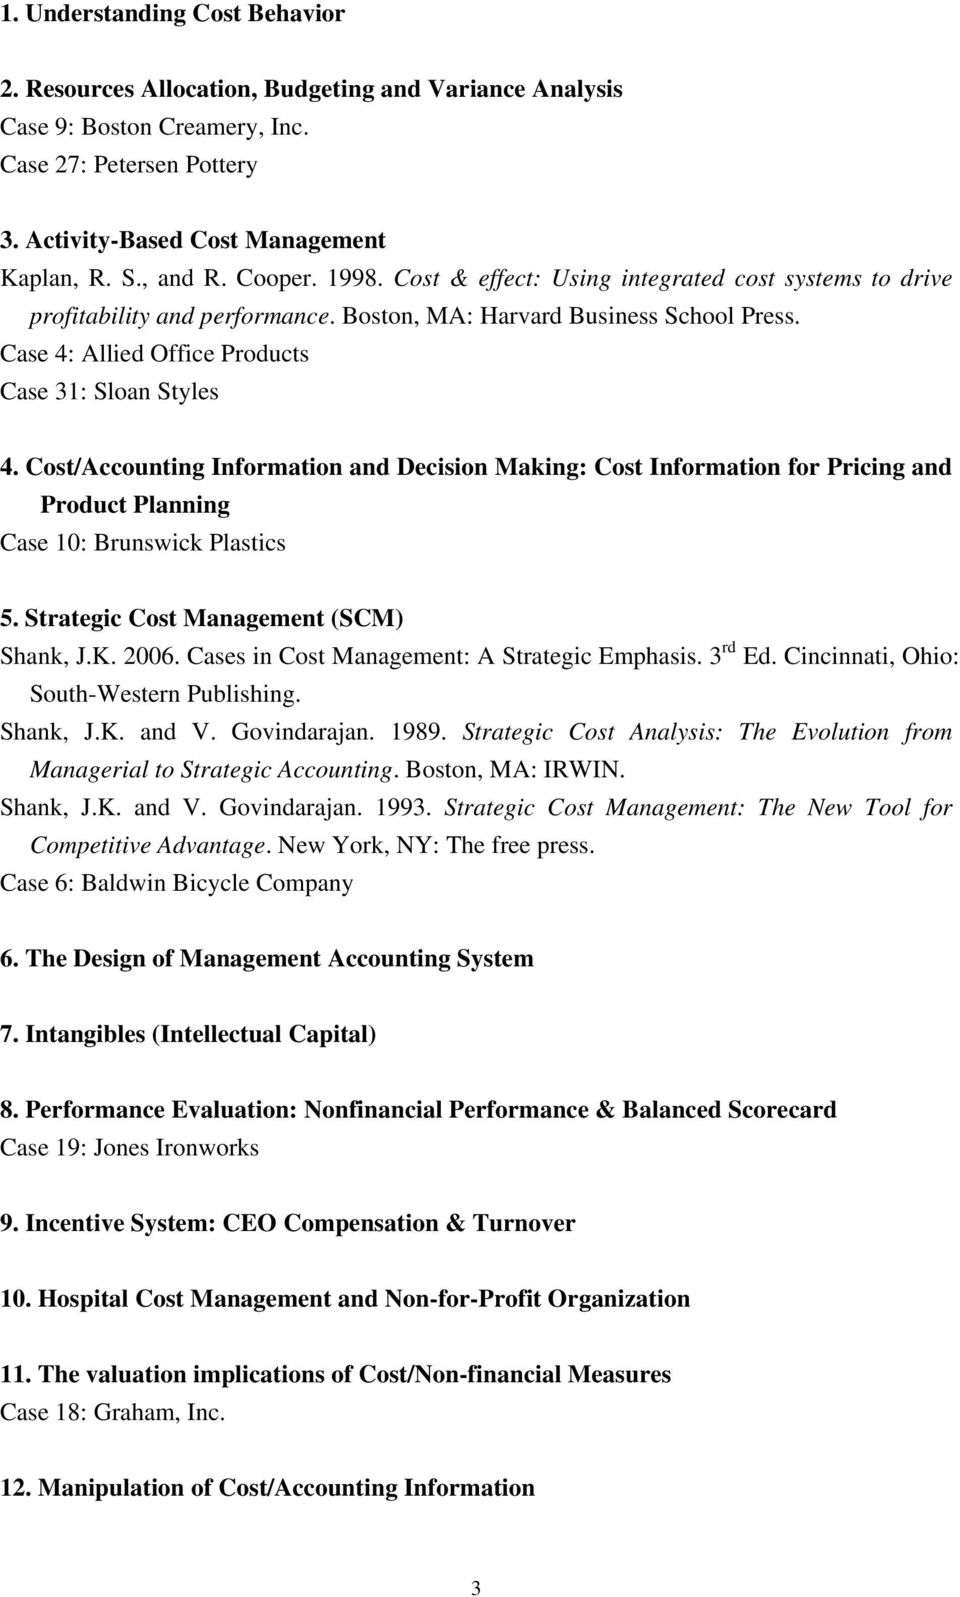 Cost/Accounting Information and Decision Making: Cost Information for Pricing and Product Planning Case 10: Brunswick Plastics 5. Strategic Cost Management (SCM) Shank, J.K. 2006.